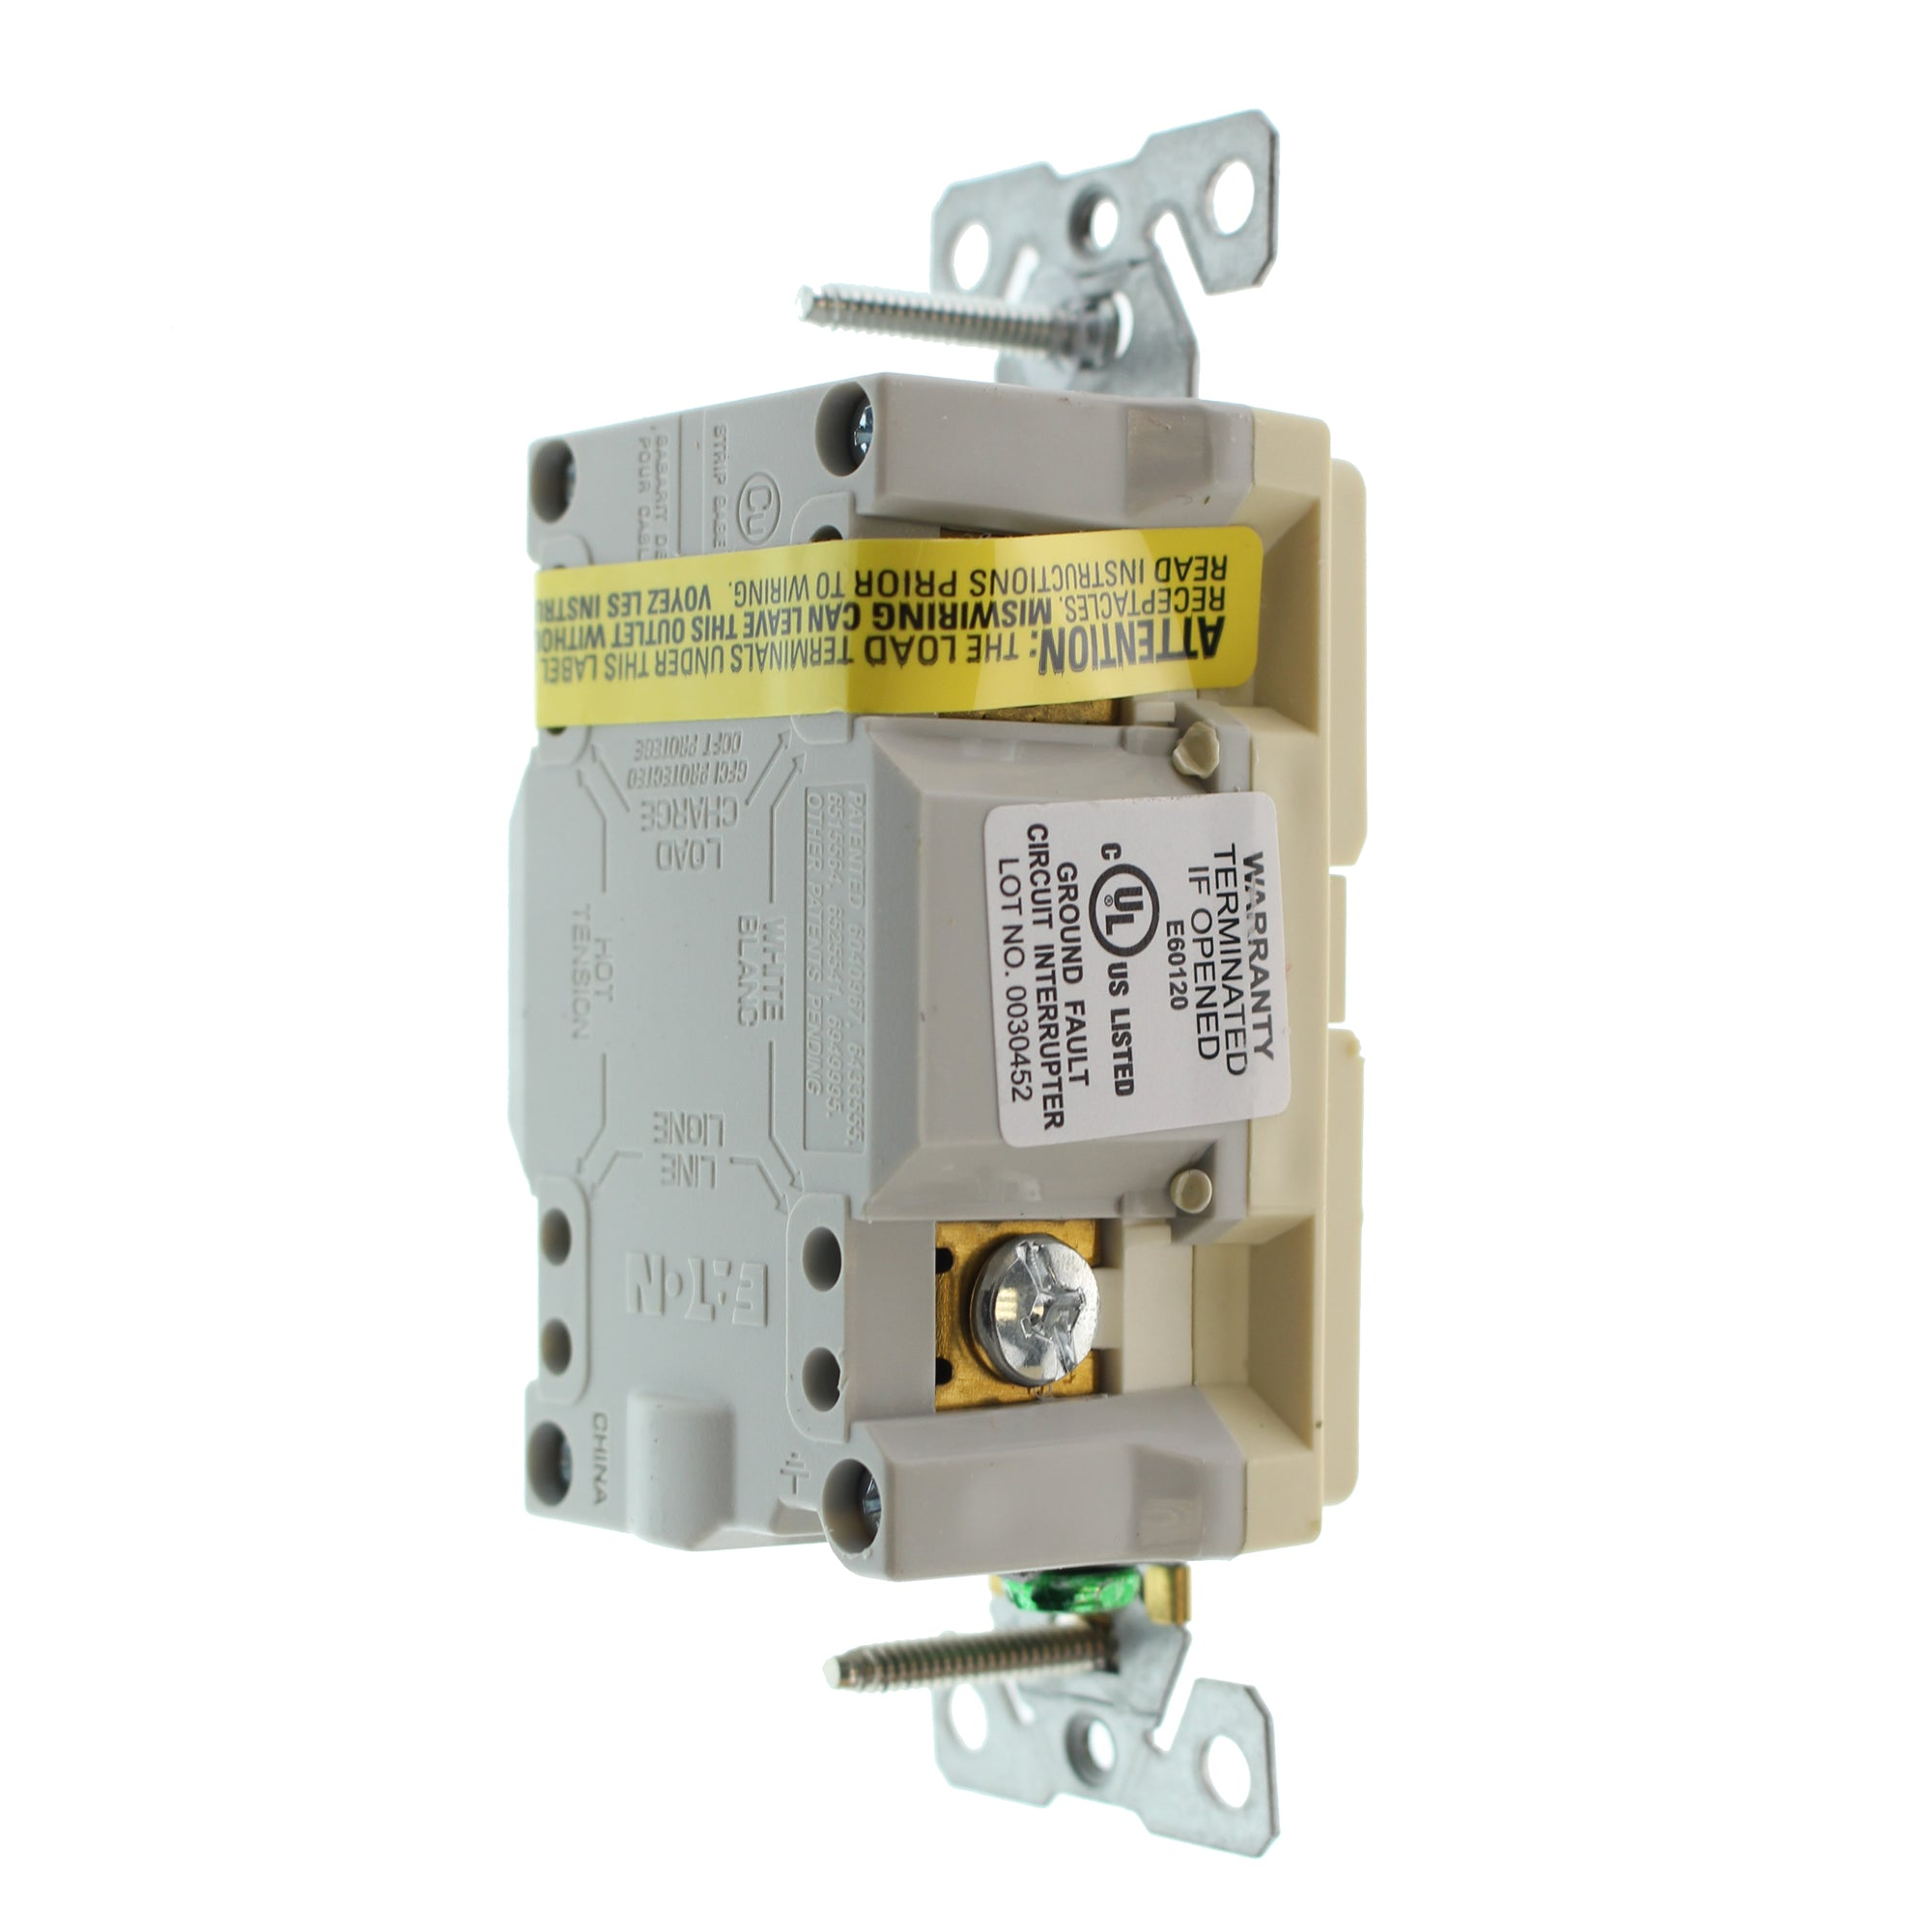 Hubbell Gftrst15i3z Tamper Gfci Receptacle Tr 15a 125v Ivory 3 How To Wire A Ground Fault Circuit Interrupter Other Pack